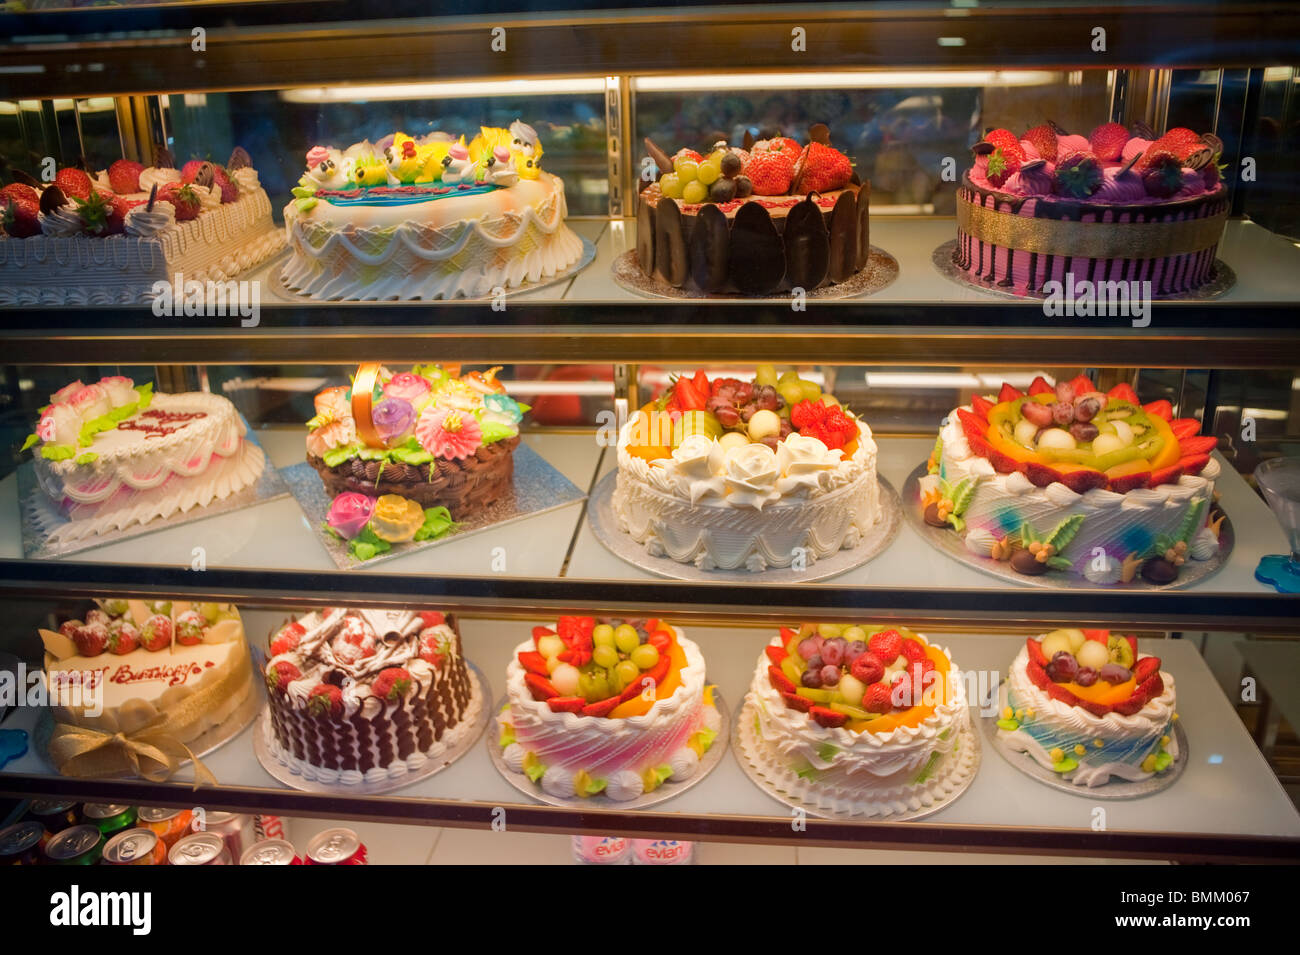 Cake Shops In Chinatown London